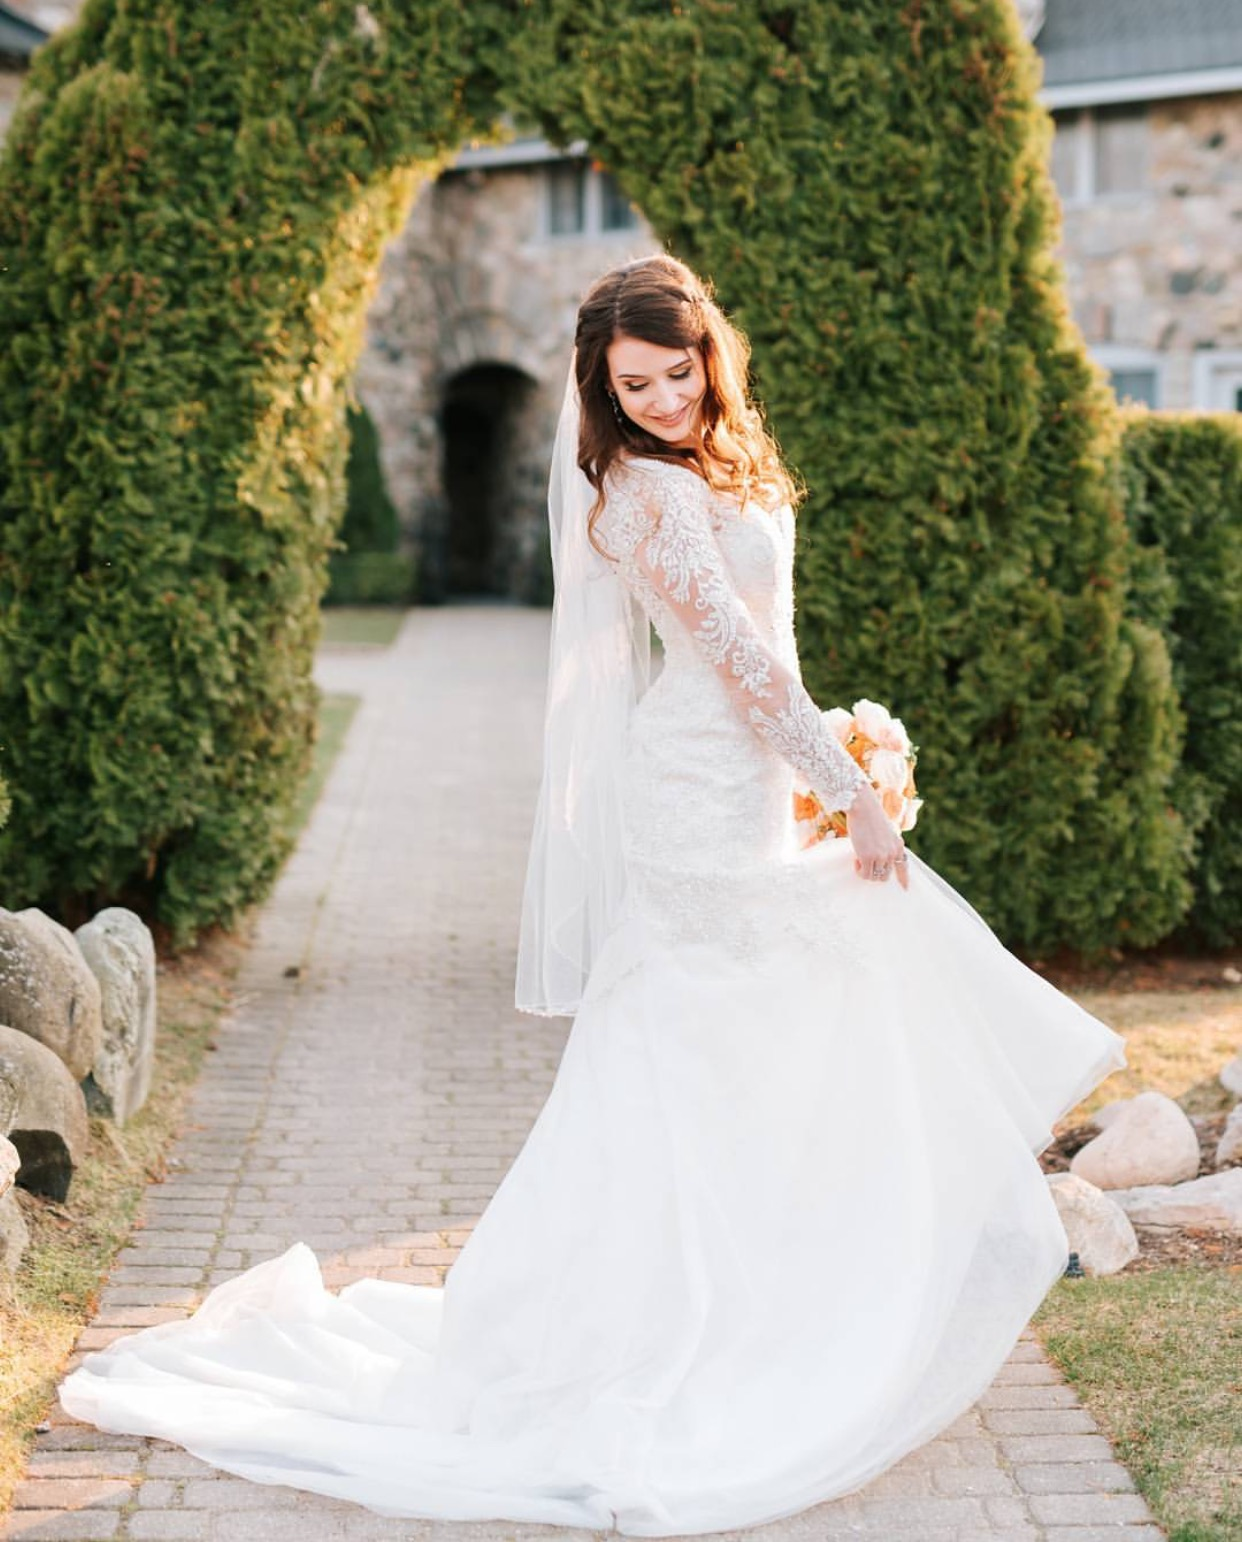 Wedding Dresses Worn By Clv Brides Camille La Vie